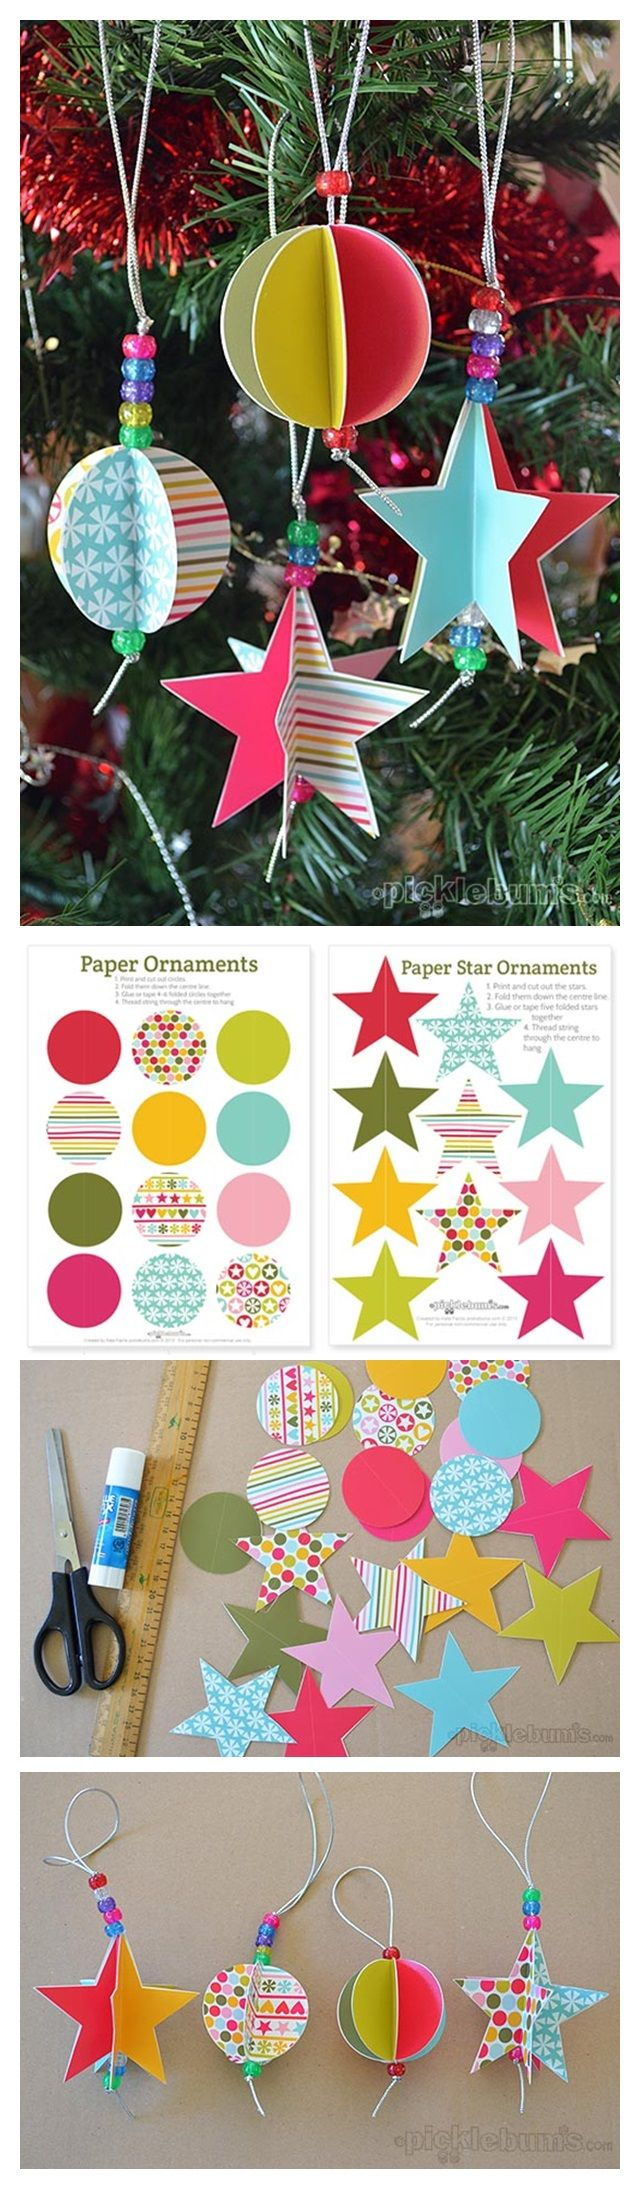 DIY ornaments : tutorial (+ free printable templates)